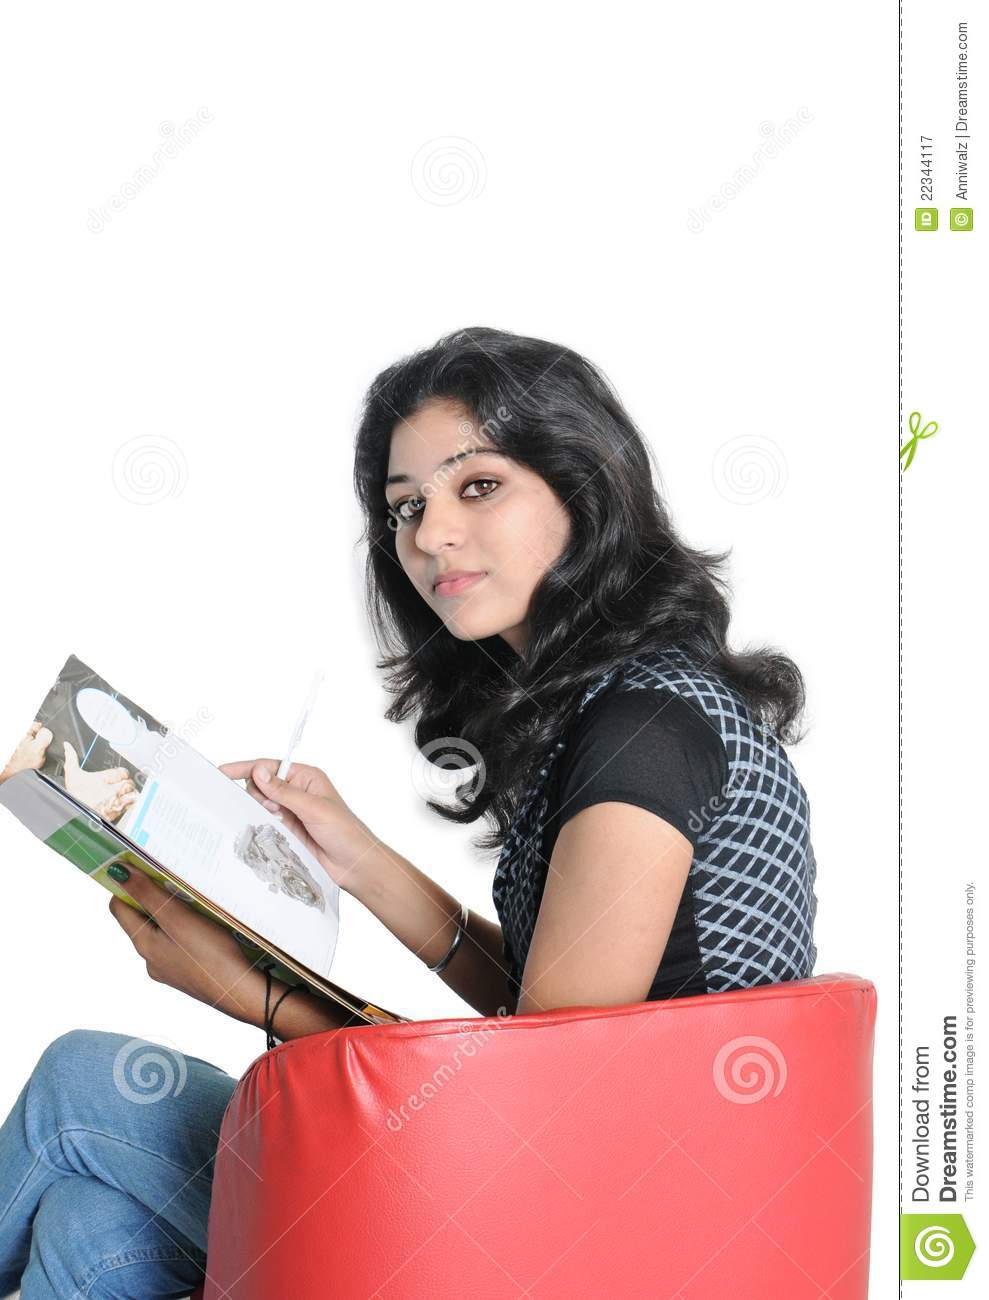 indian college student reading book. stock image - image of indian